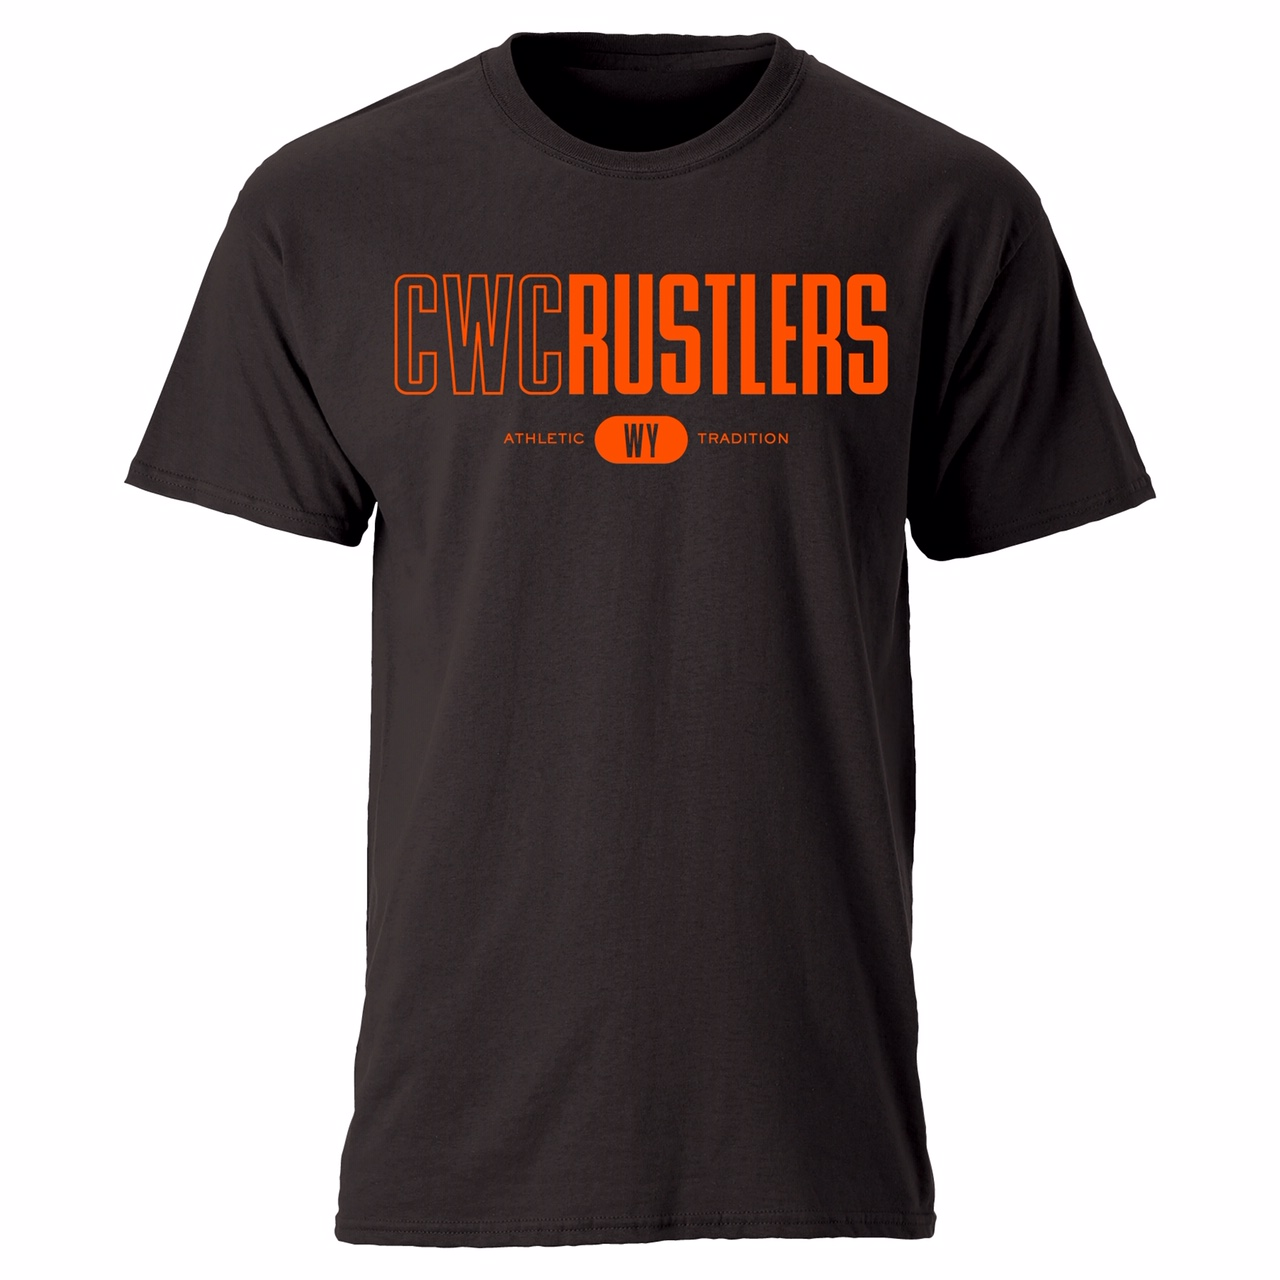 Athletic Tradition T-Shirt